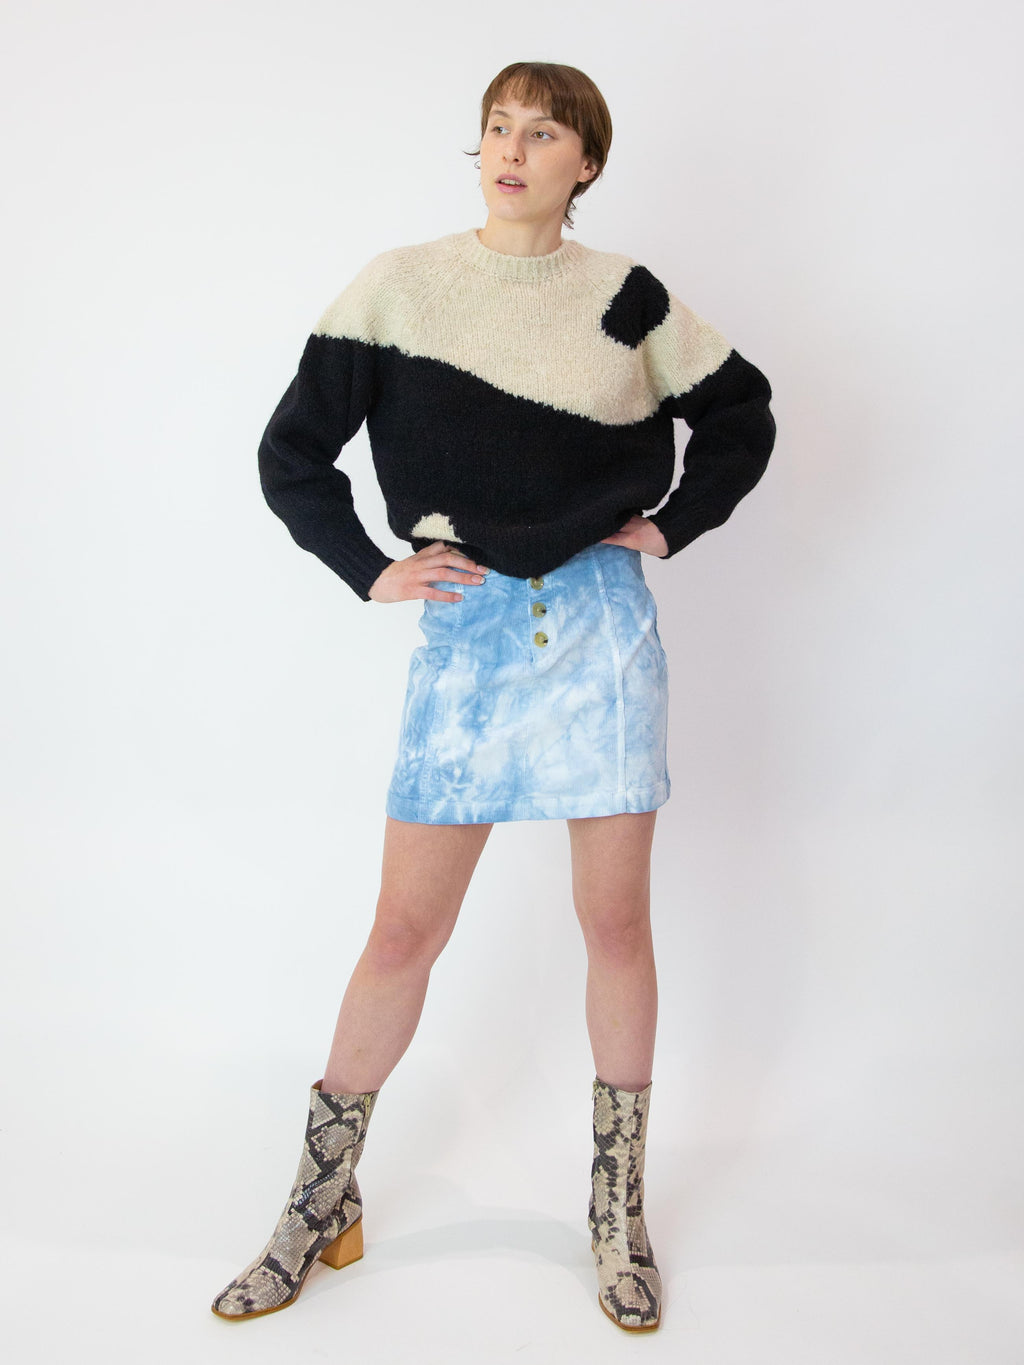 PALOMA WOOL Dallas Corduroy Tie-Dye Skirt - Soft Blue